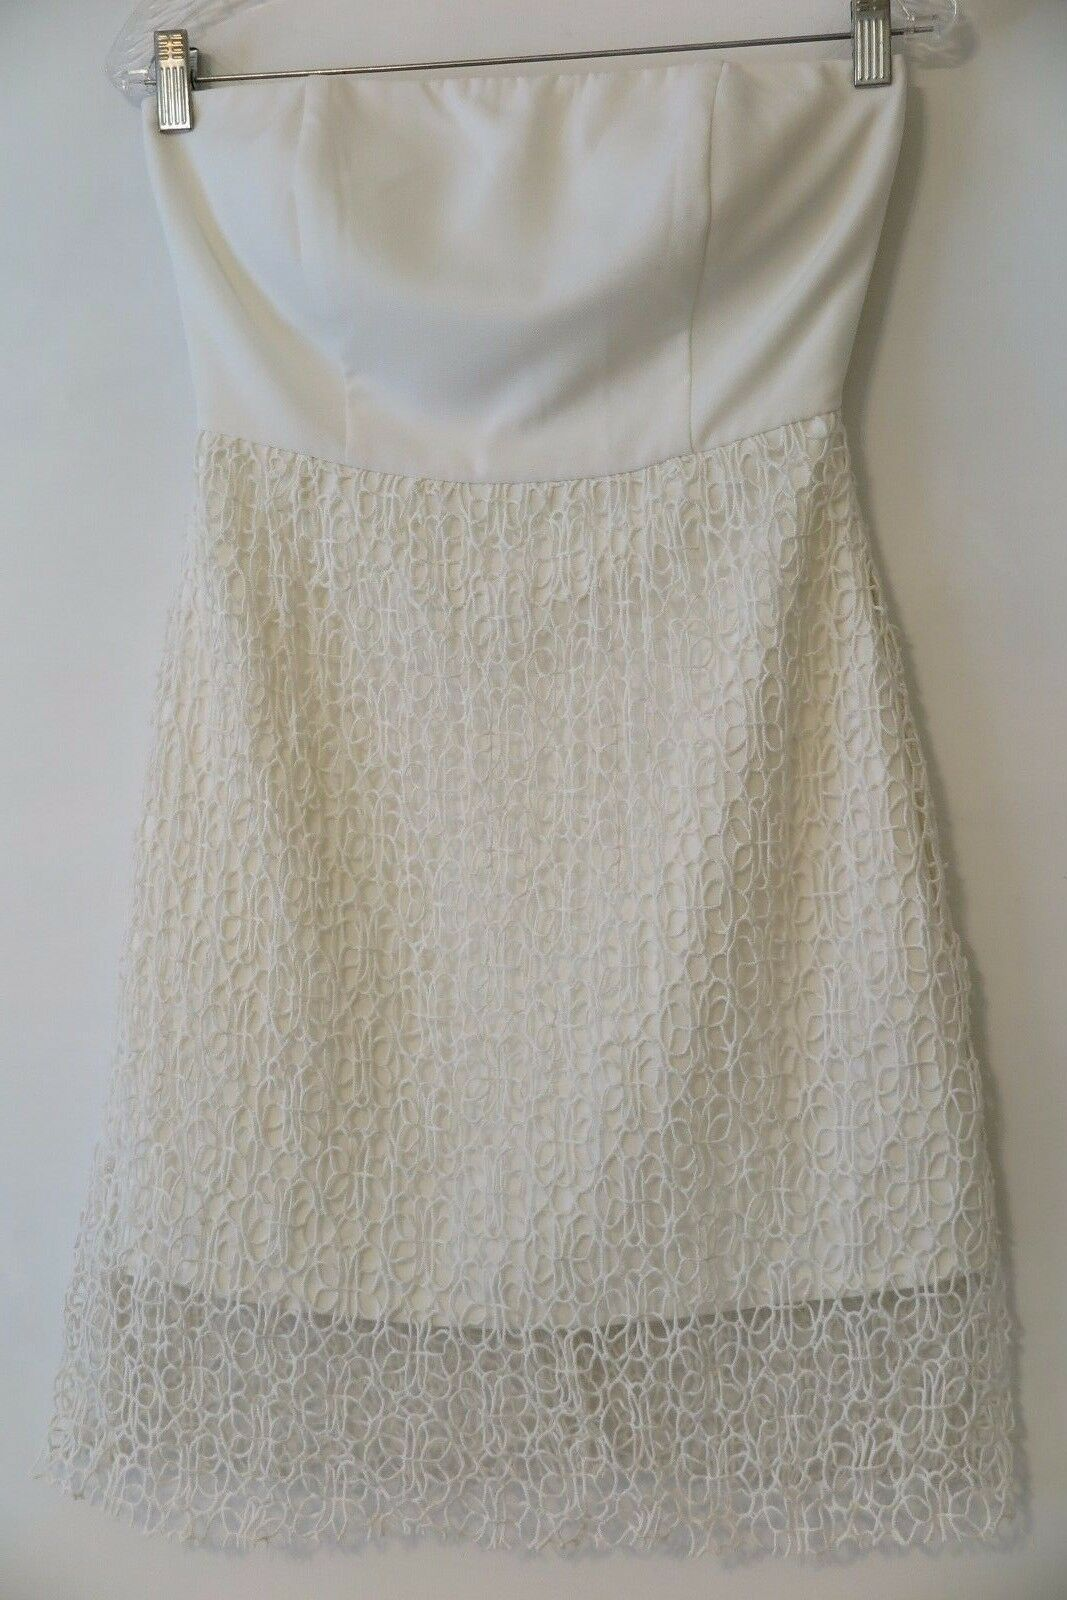 NWT Aryn K. K. K. Strapless White Tube Dress w Lace Overlay Size S MSRP  150 d05ddc